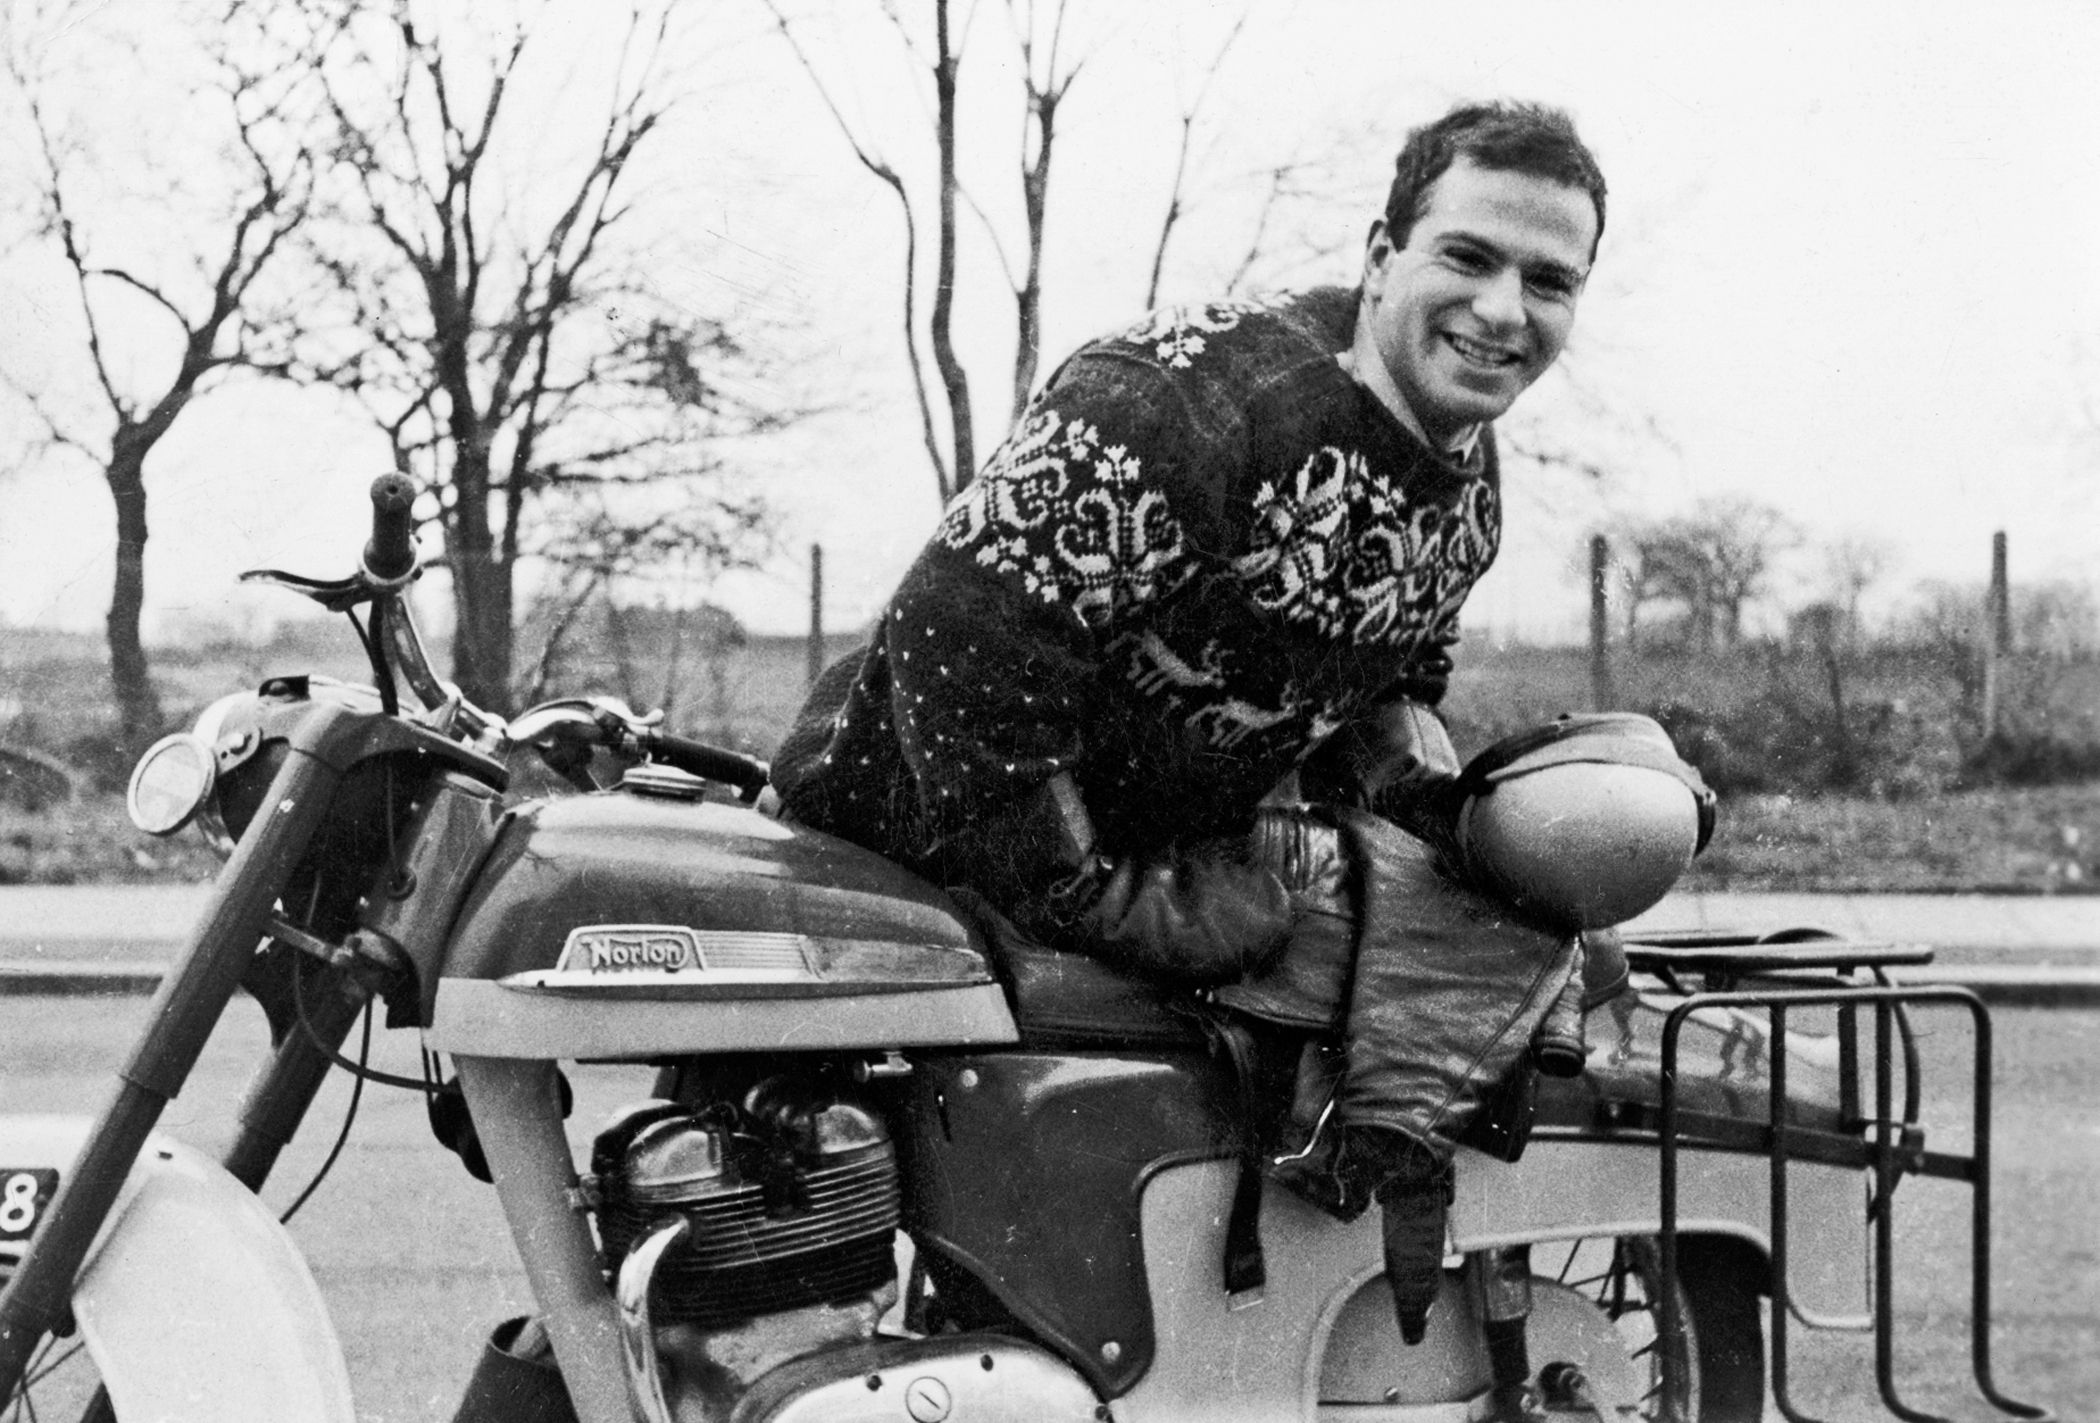 oliver sacks Oliver sacks: oliver sacks, british neurologist and writer who won acclaim for his sympathetic case histories of patients with unusual neurological disorders.